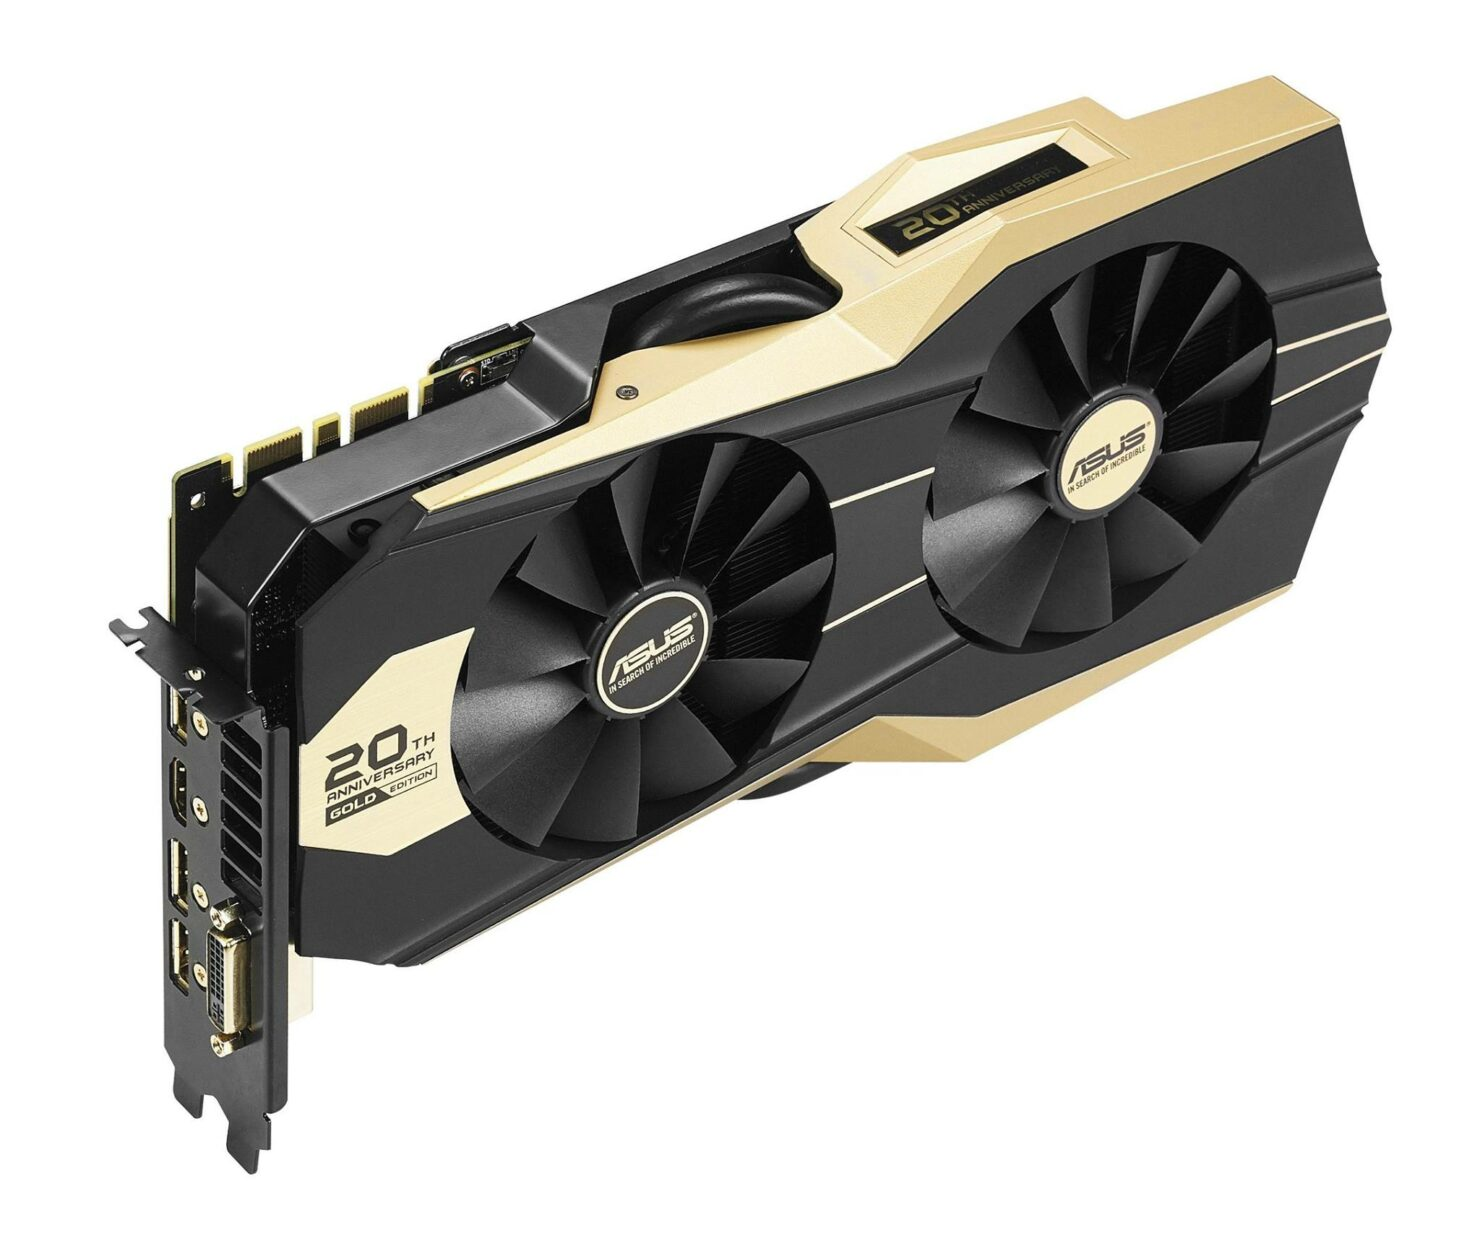 asus-geforce-gtx-980-20th-anniversary-gold-edition_side